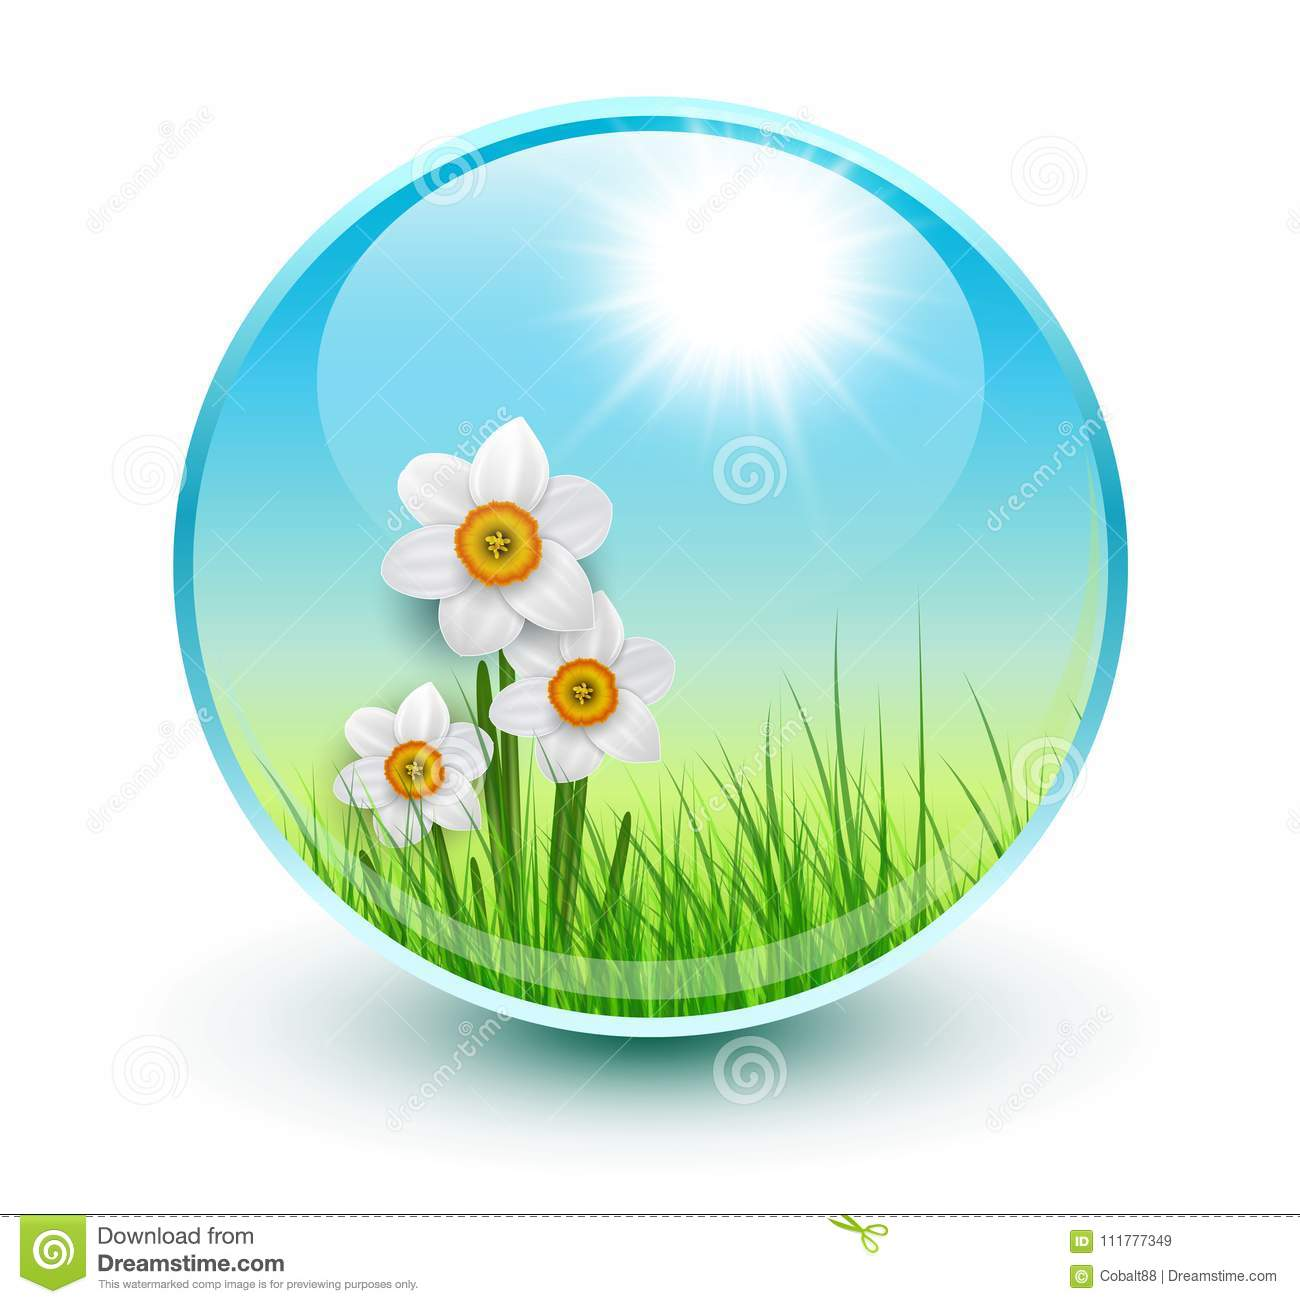 Flowers and grass inside crystal sphere